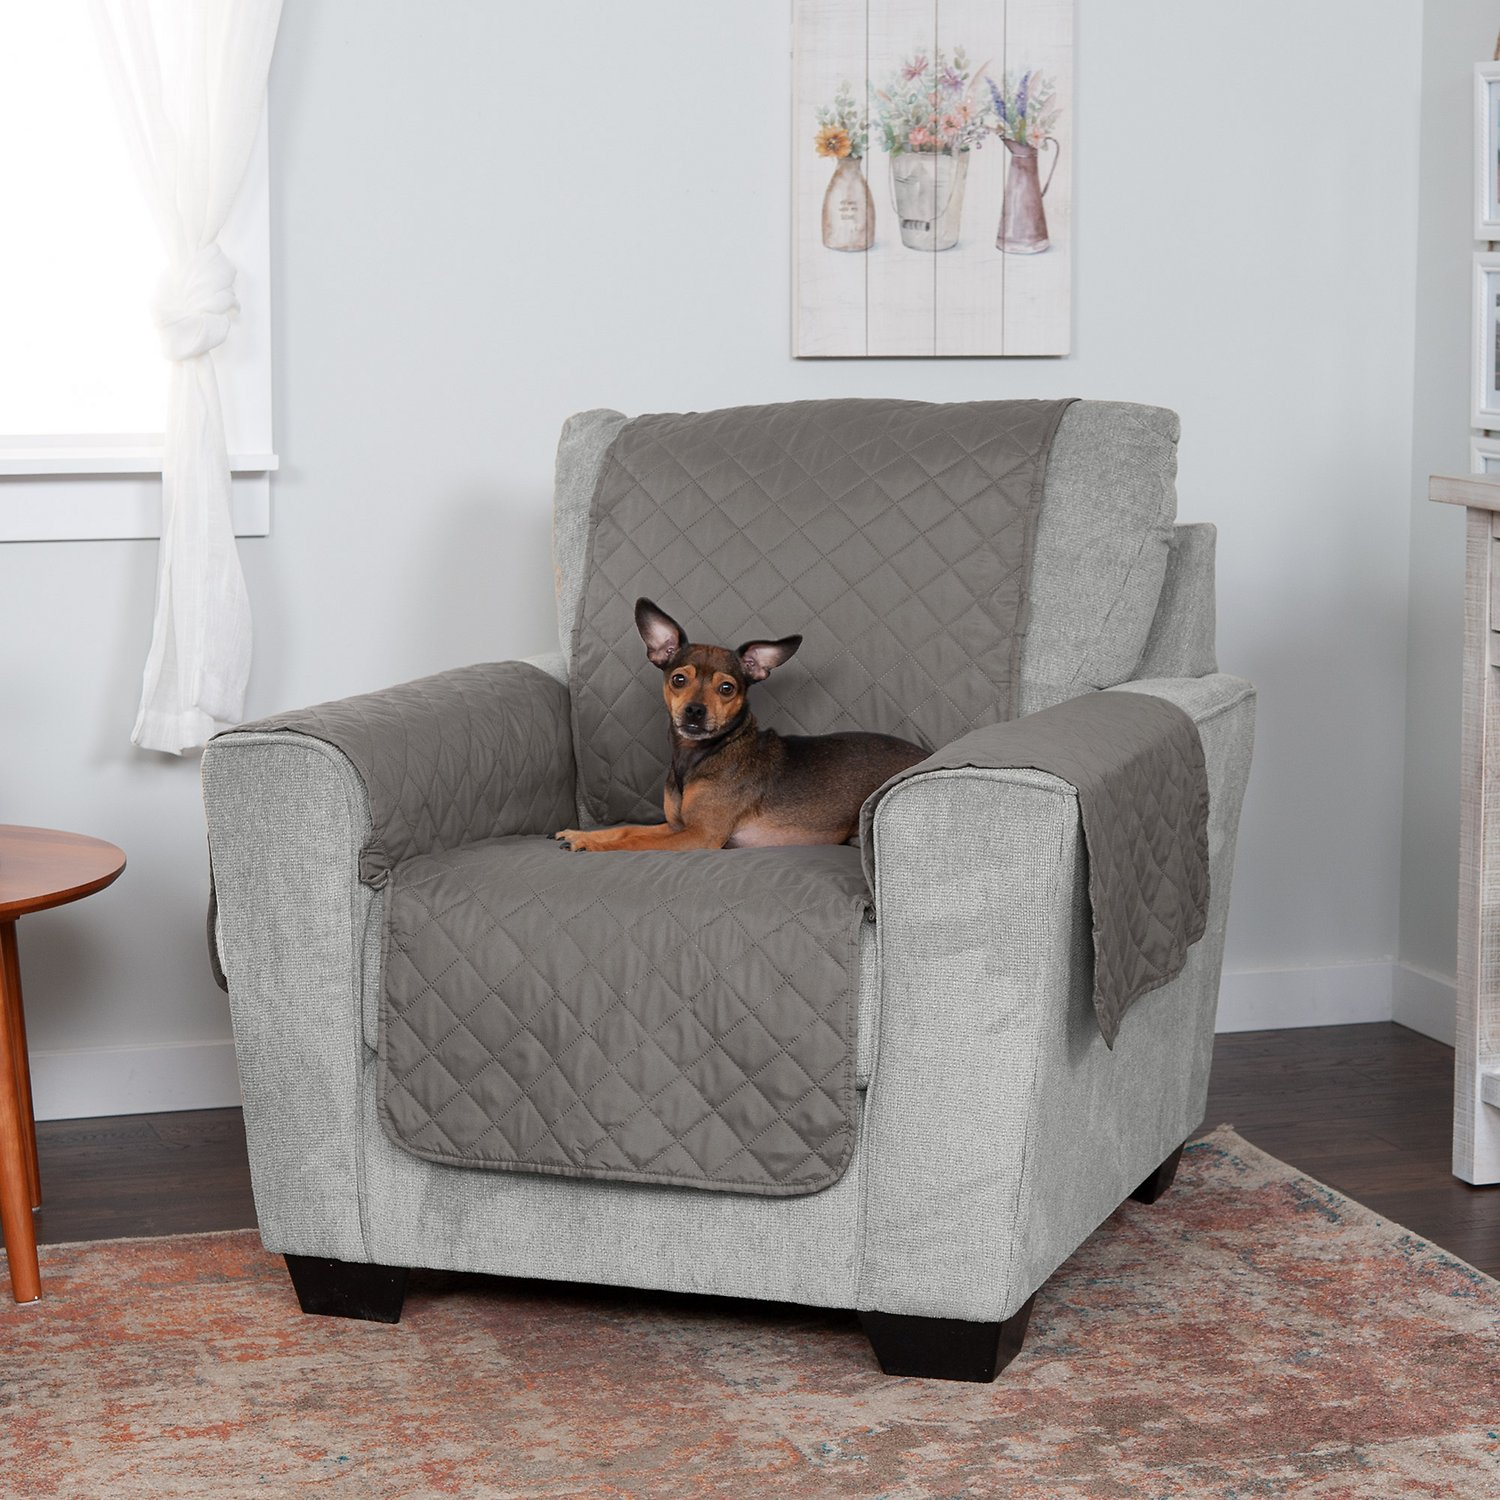 Excellent Furhaven Water Resistant Reversible Furniture Protector Gray Mist Chair Beatyapartments Chair Design Images Beatyapartmentscom